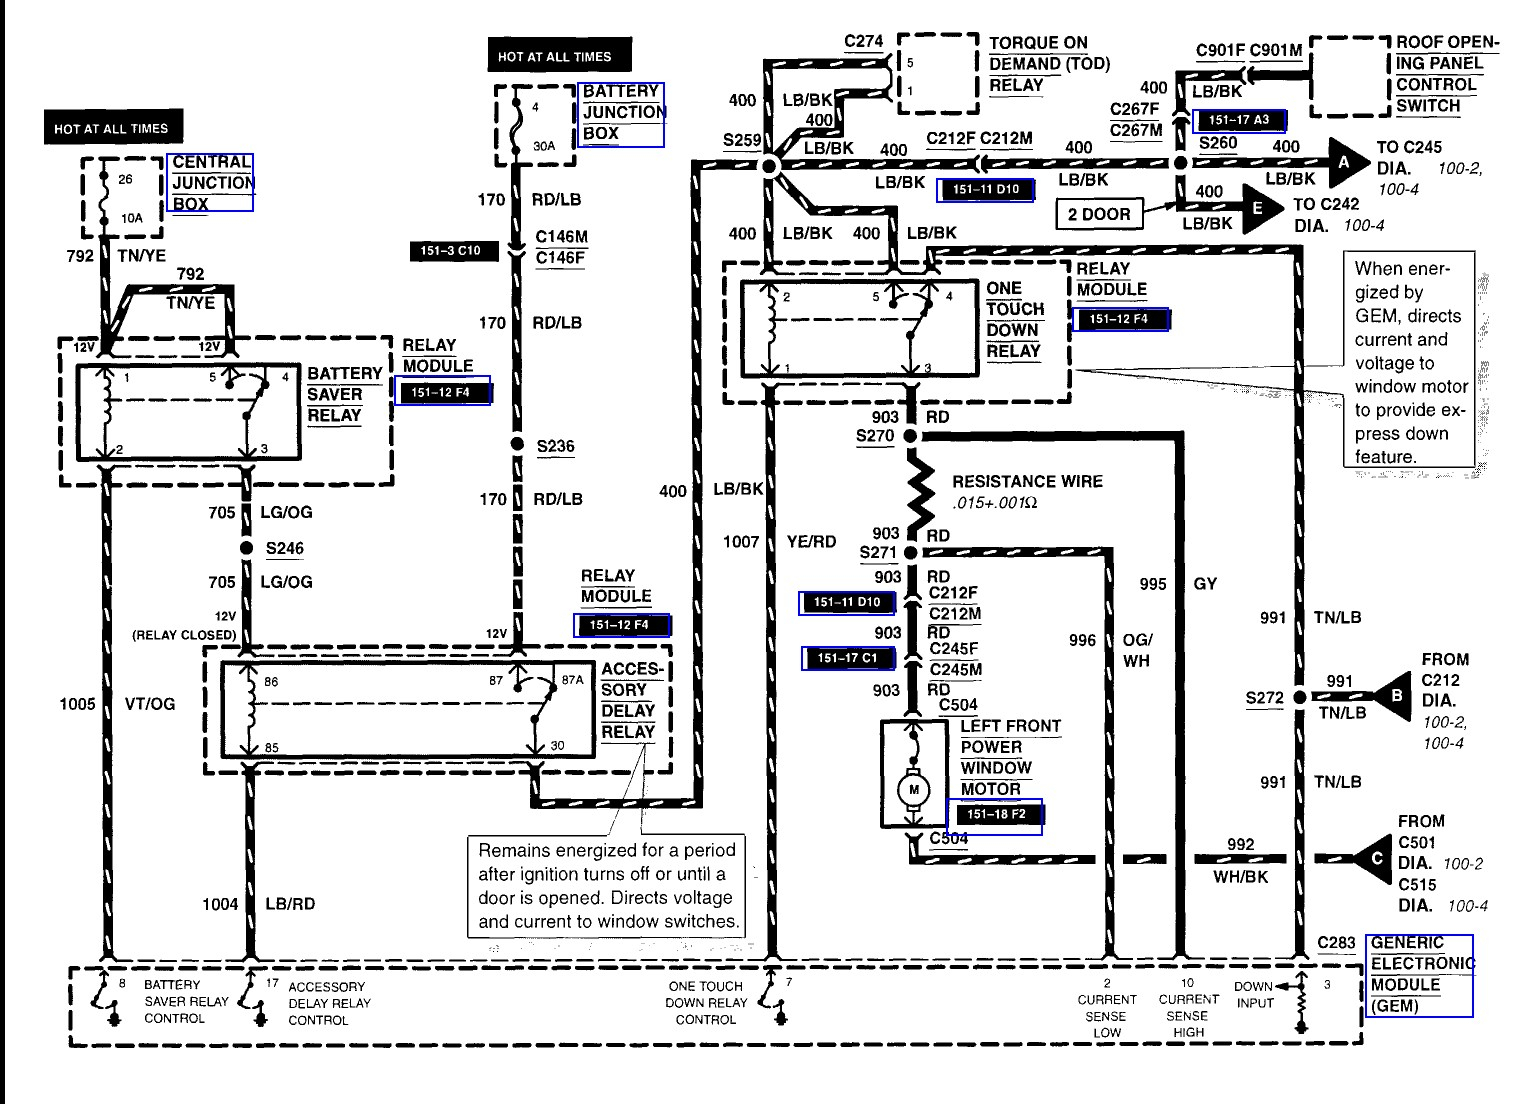 F53 Ac Diagram | Wiring Diagram  Ford F V Wiring Diagram on 1997 ford f53 wiring-diagram, bounder wiring-diagram, 1999 ford motorhome fuse box, 1999 ford f-150 wiring diagram, 4r70w wiring-diagram, 1967 ironhead wiring-diagram, 05 freightliner century wiring-diagram, coachmen wiring-diagram, 1999 ford alternator wiring diagram, mustang aod wiring-diagram, 1999 ford f800 relay panel, 2009 harley-davidson flh wiring-diagram,